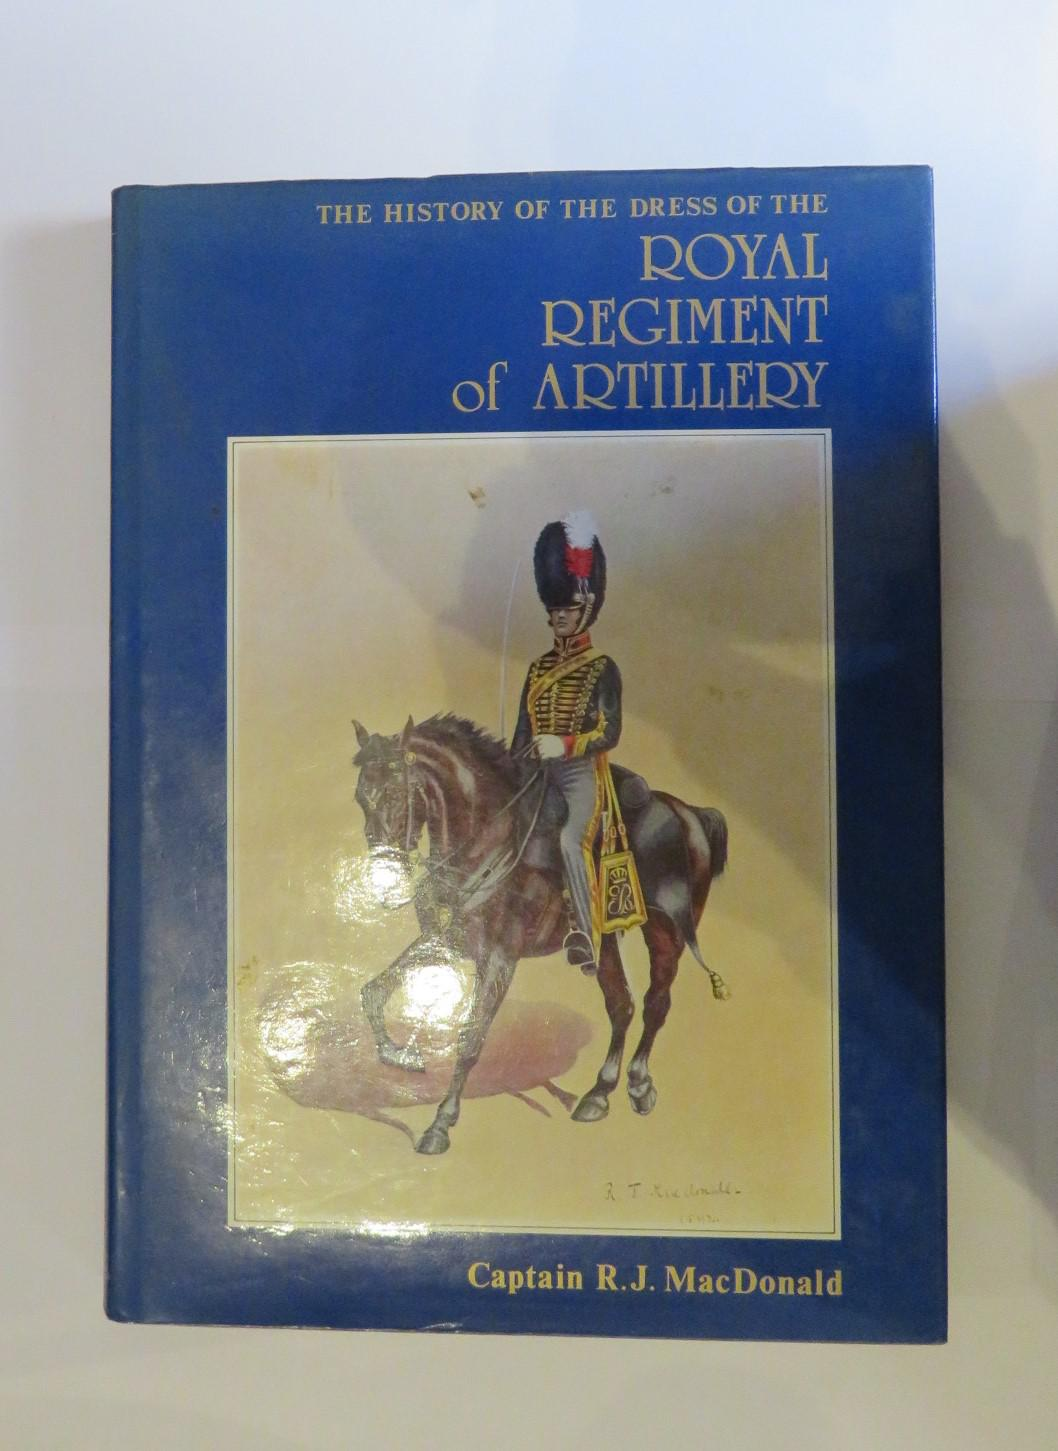 The History of the Dress of the Royal Regiment of Artillery 1625-1897